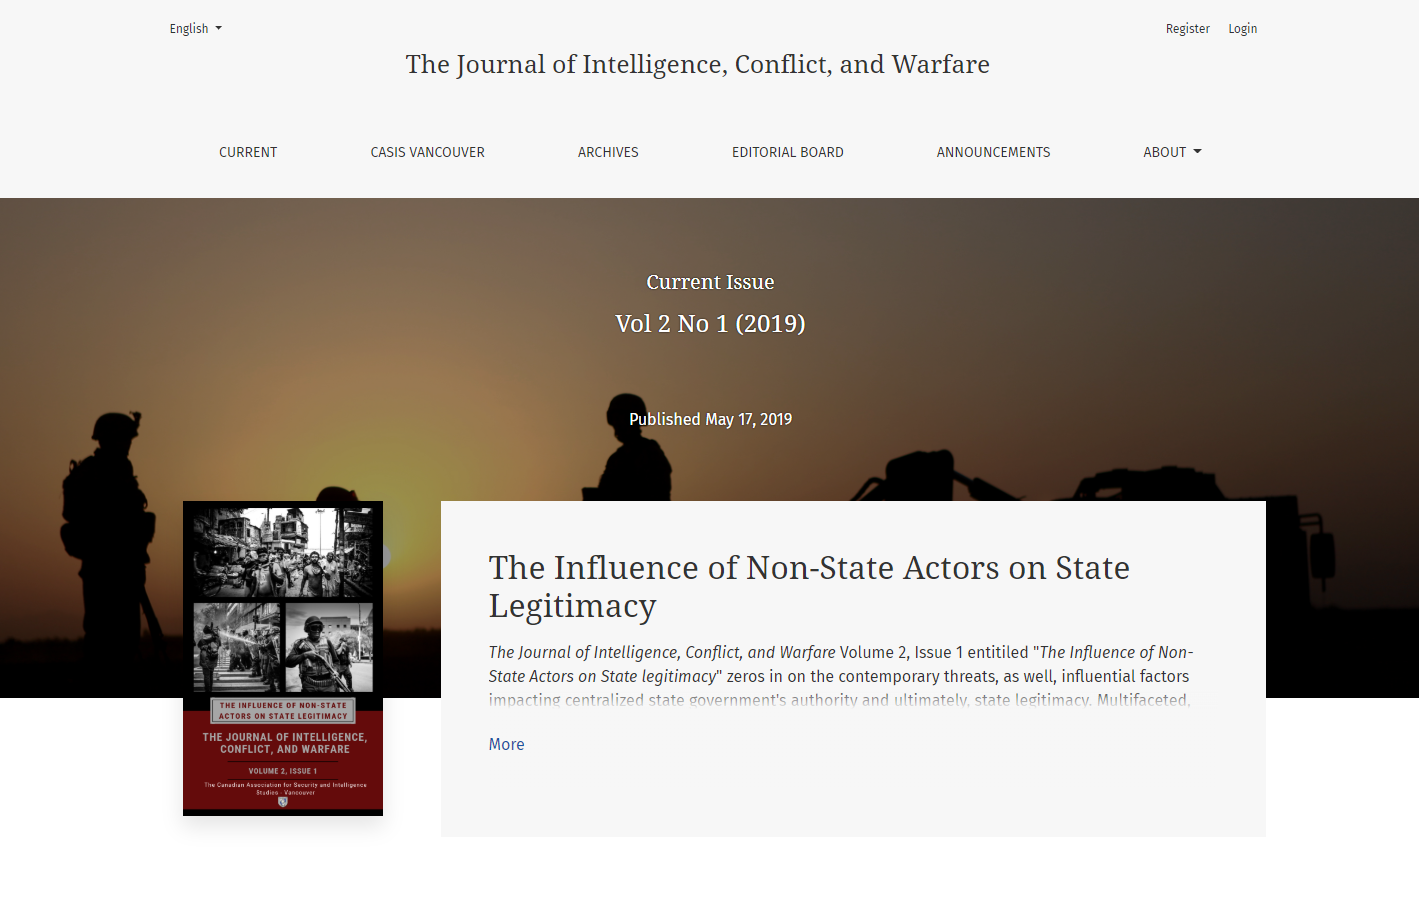 The Journal of Intelligence, Conflict, and Warfare